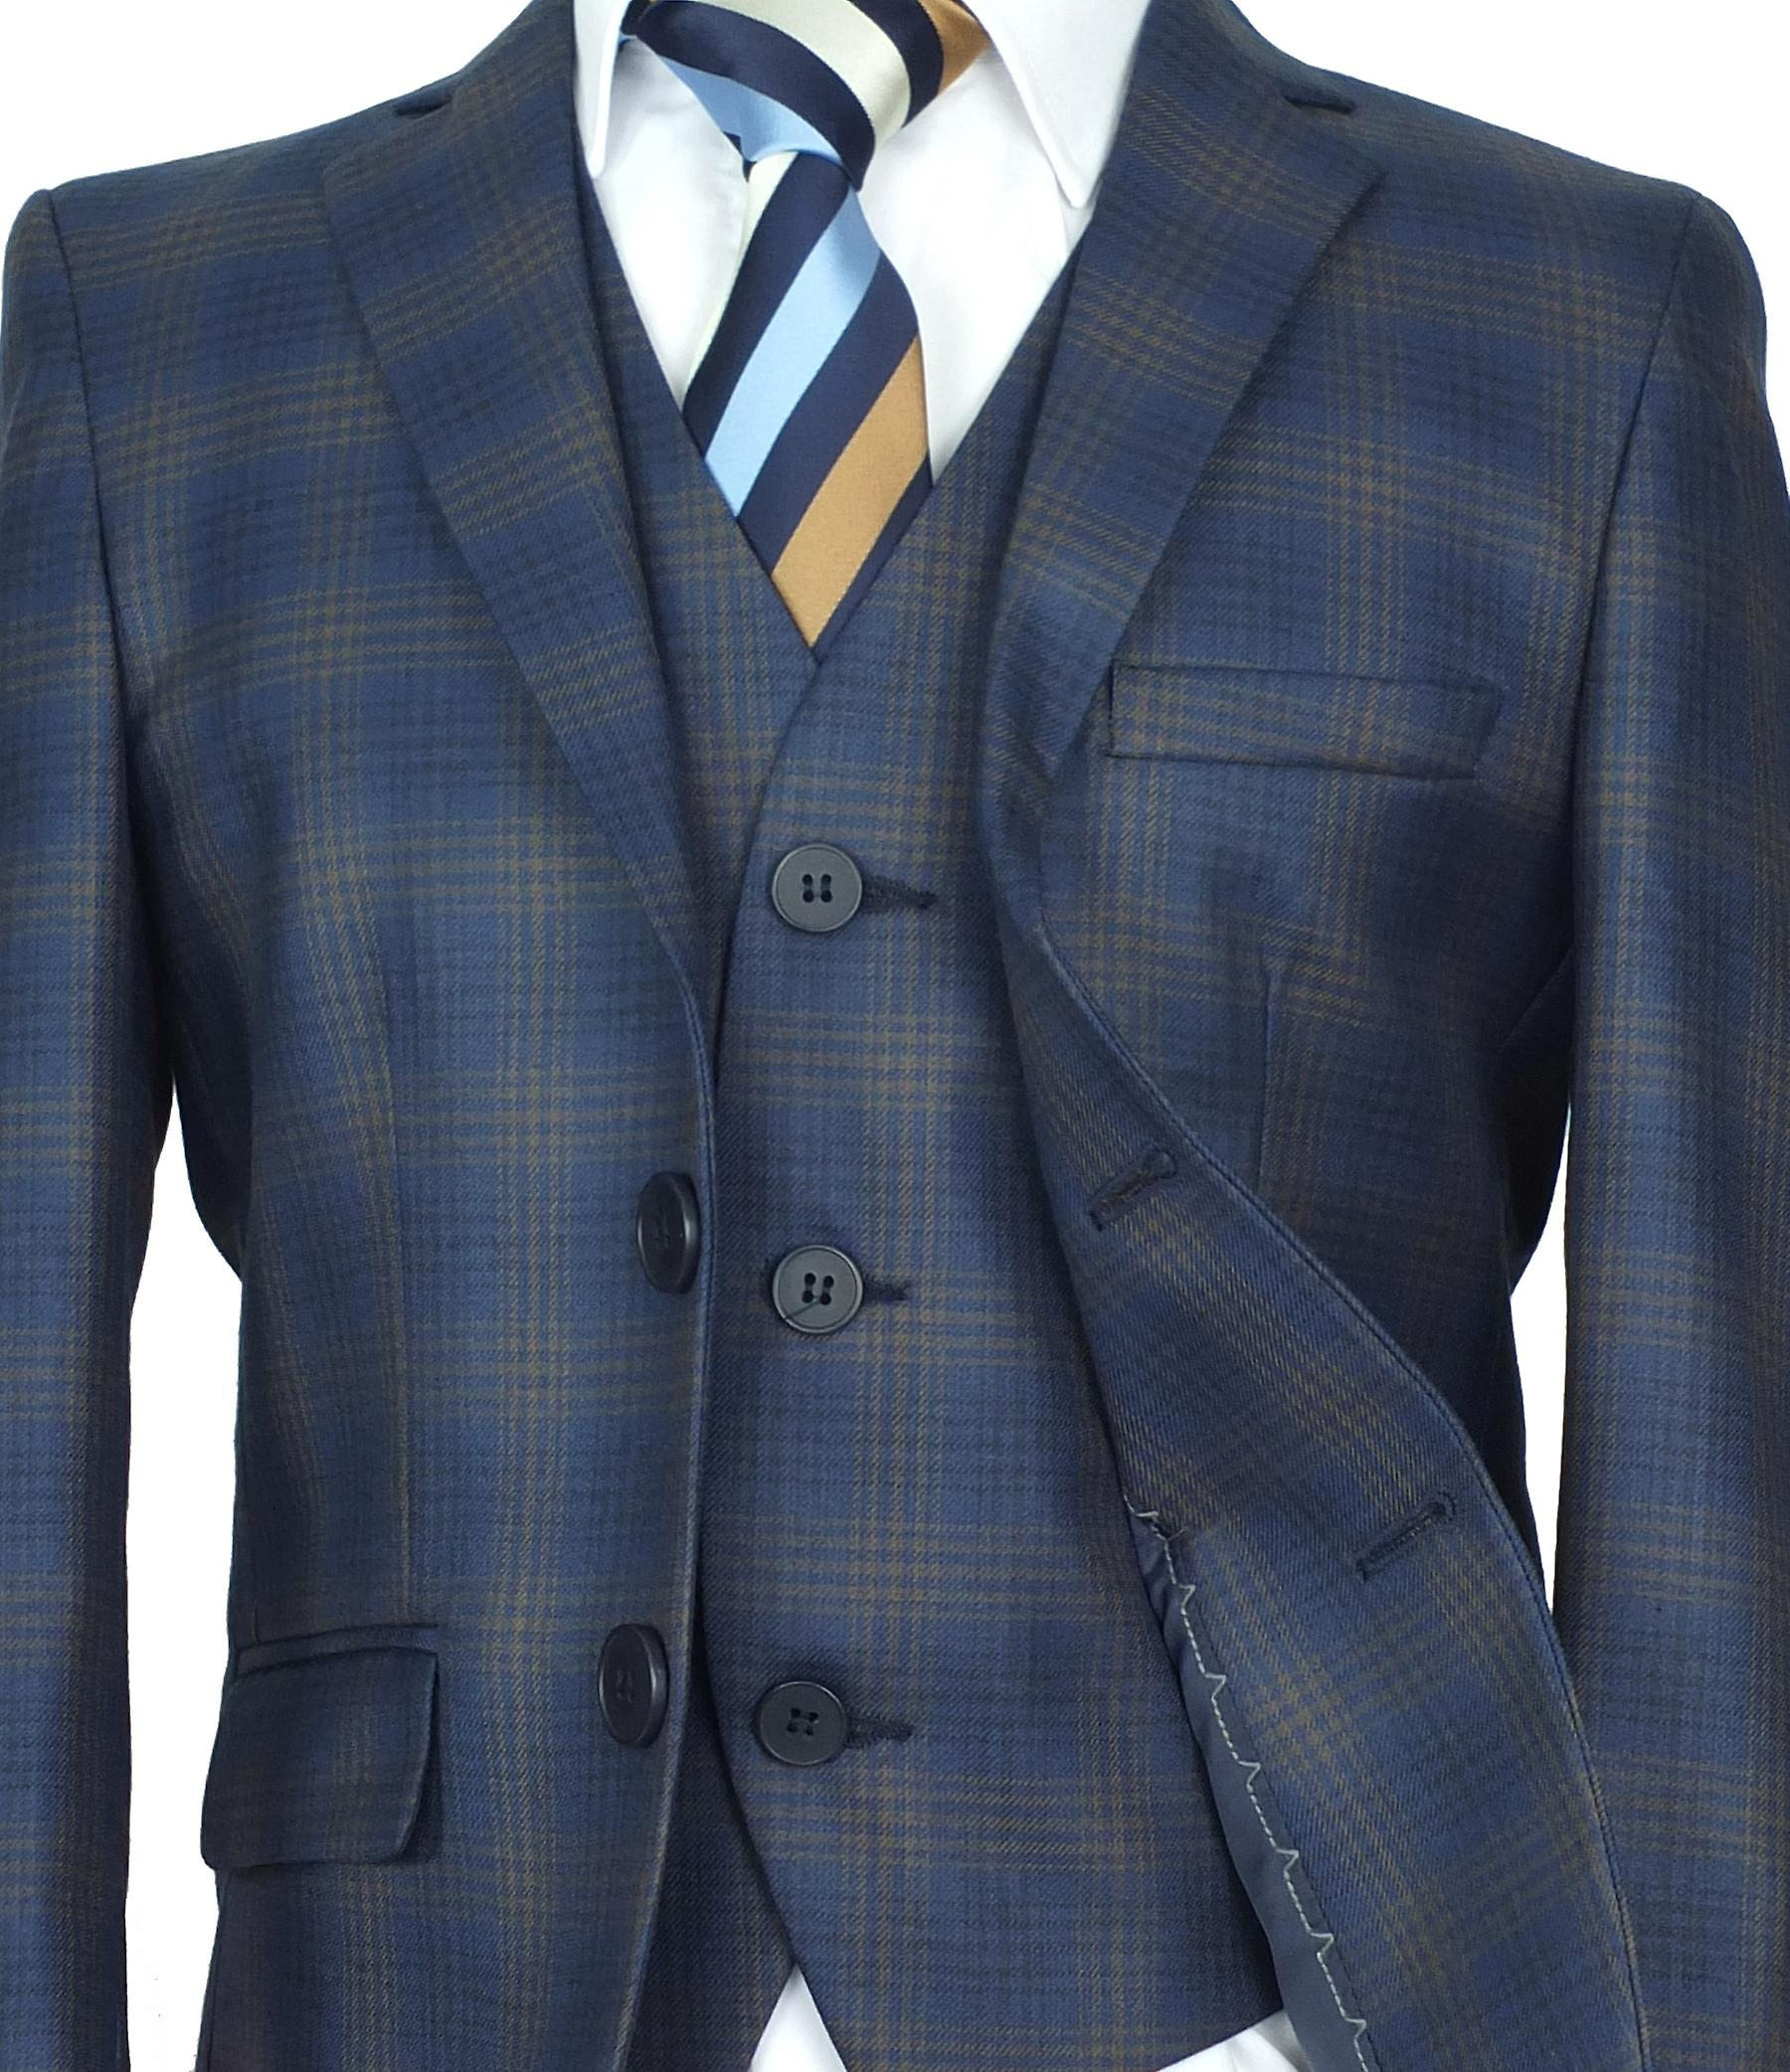 Boys Checkered Blue Gold Suit 3 Piece or 5 Piece